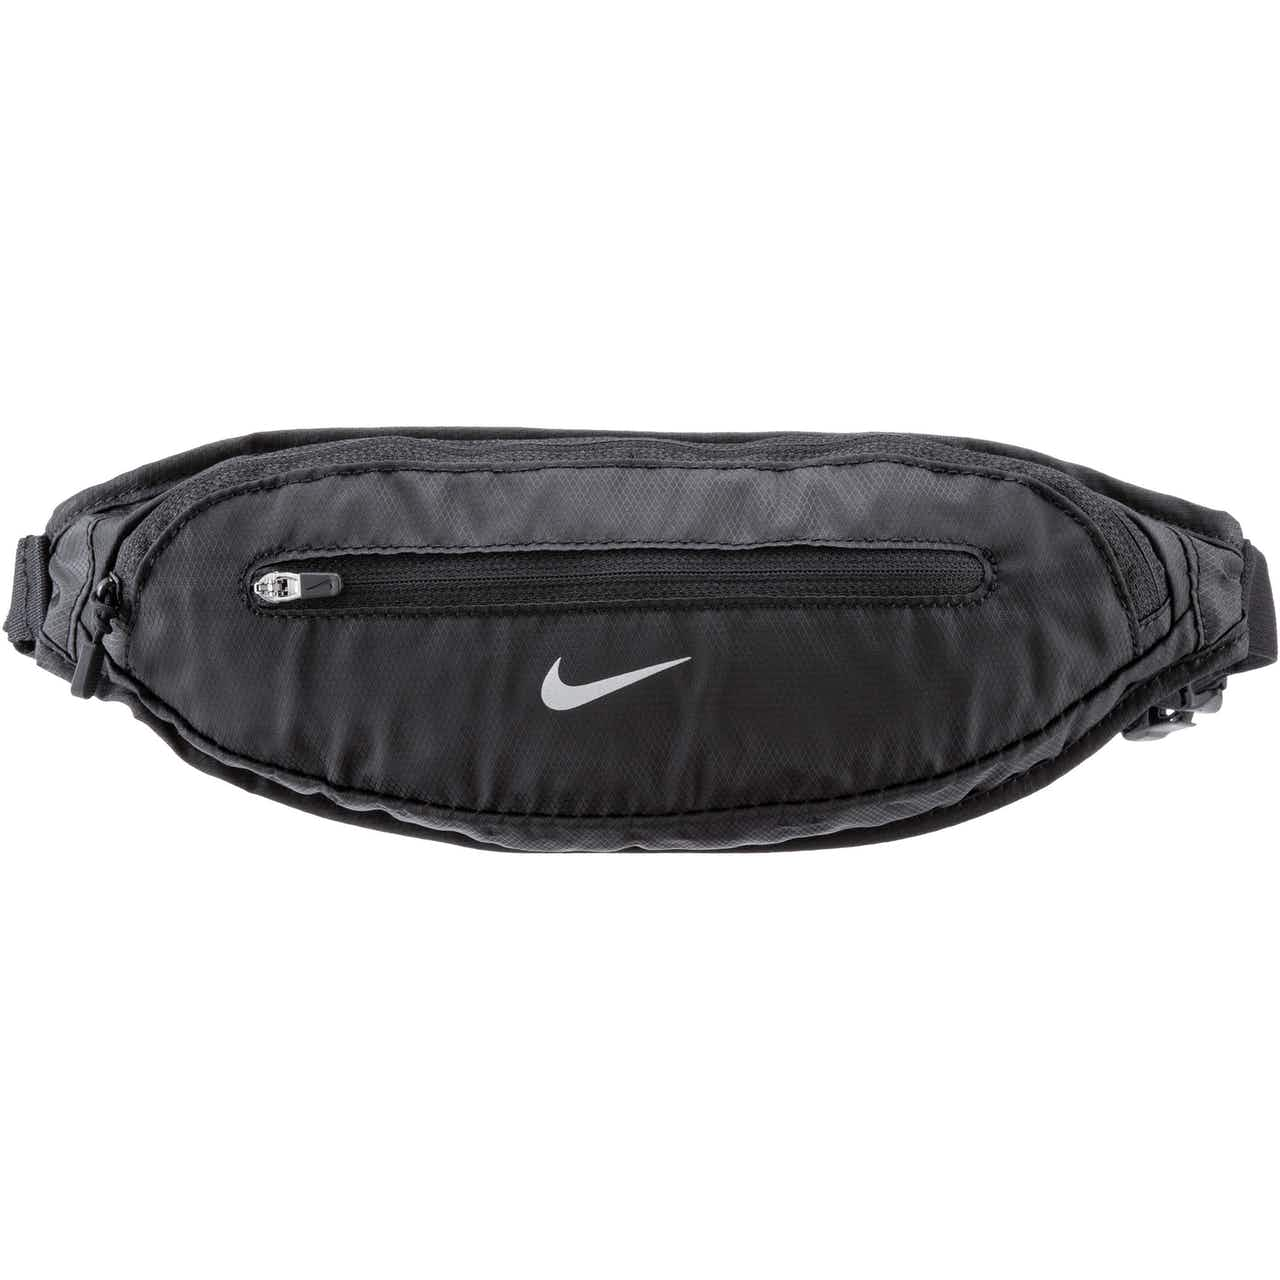 Nike Capacity 2.0 Large Bauchtasche